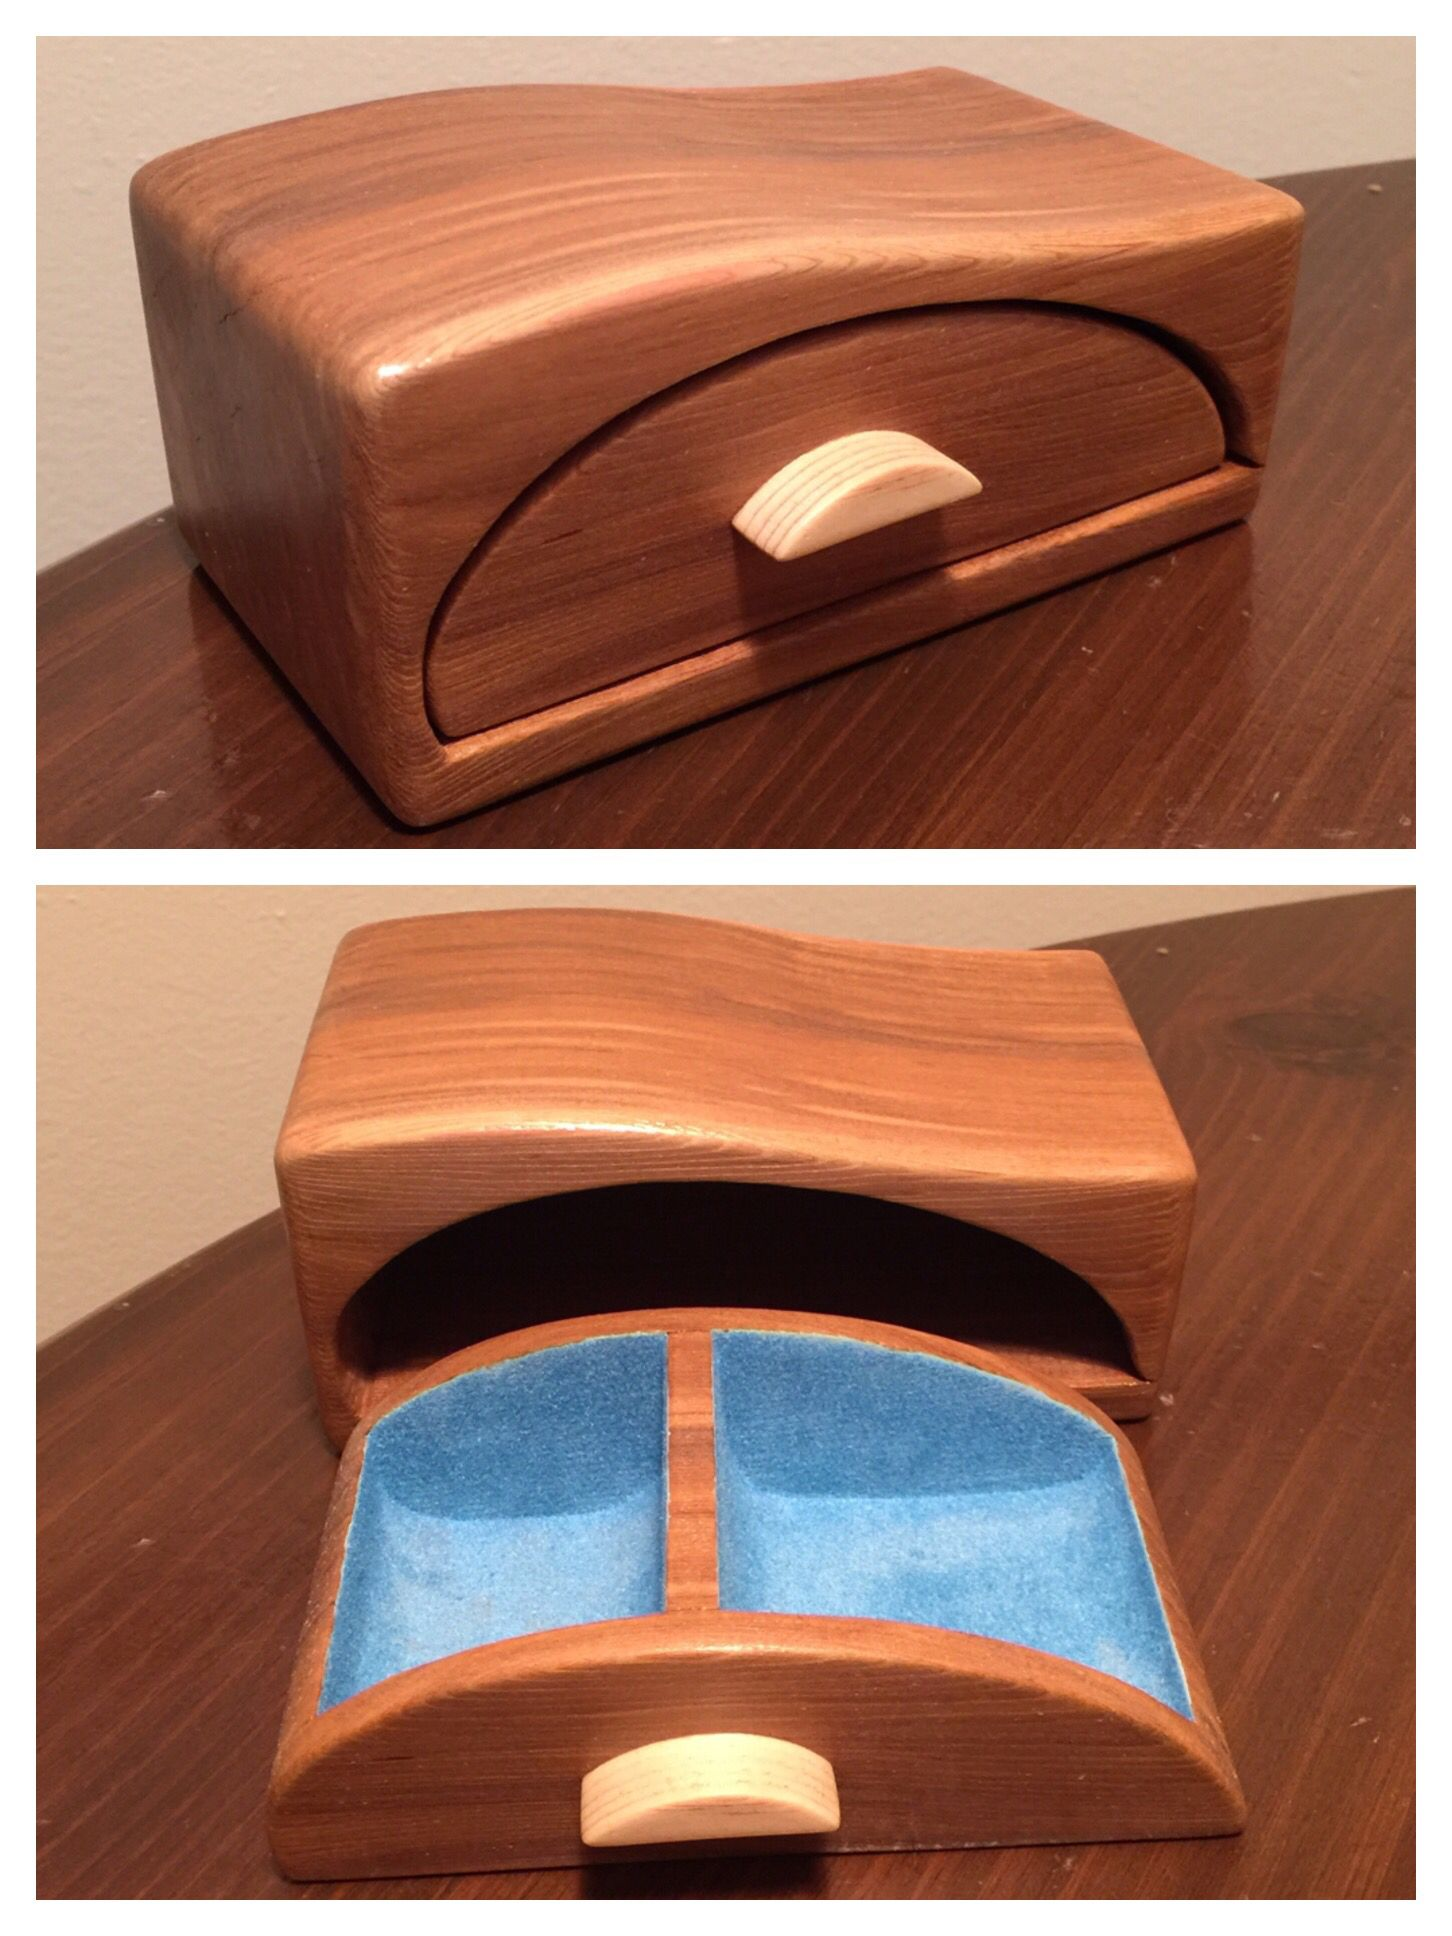 Bandsaw Box Made From Cedar 4x4 With Blue Flocking In Drawer 25